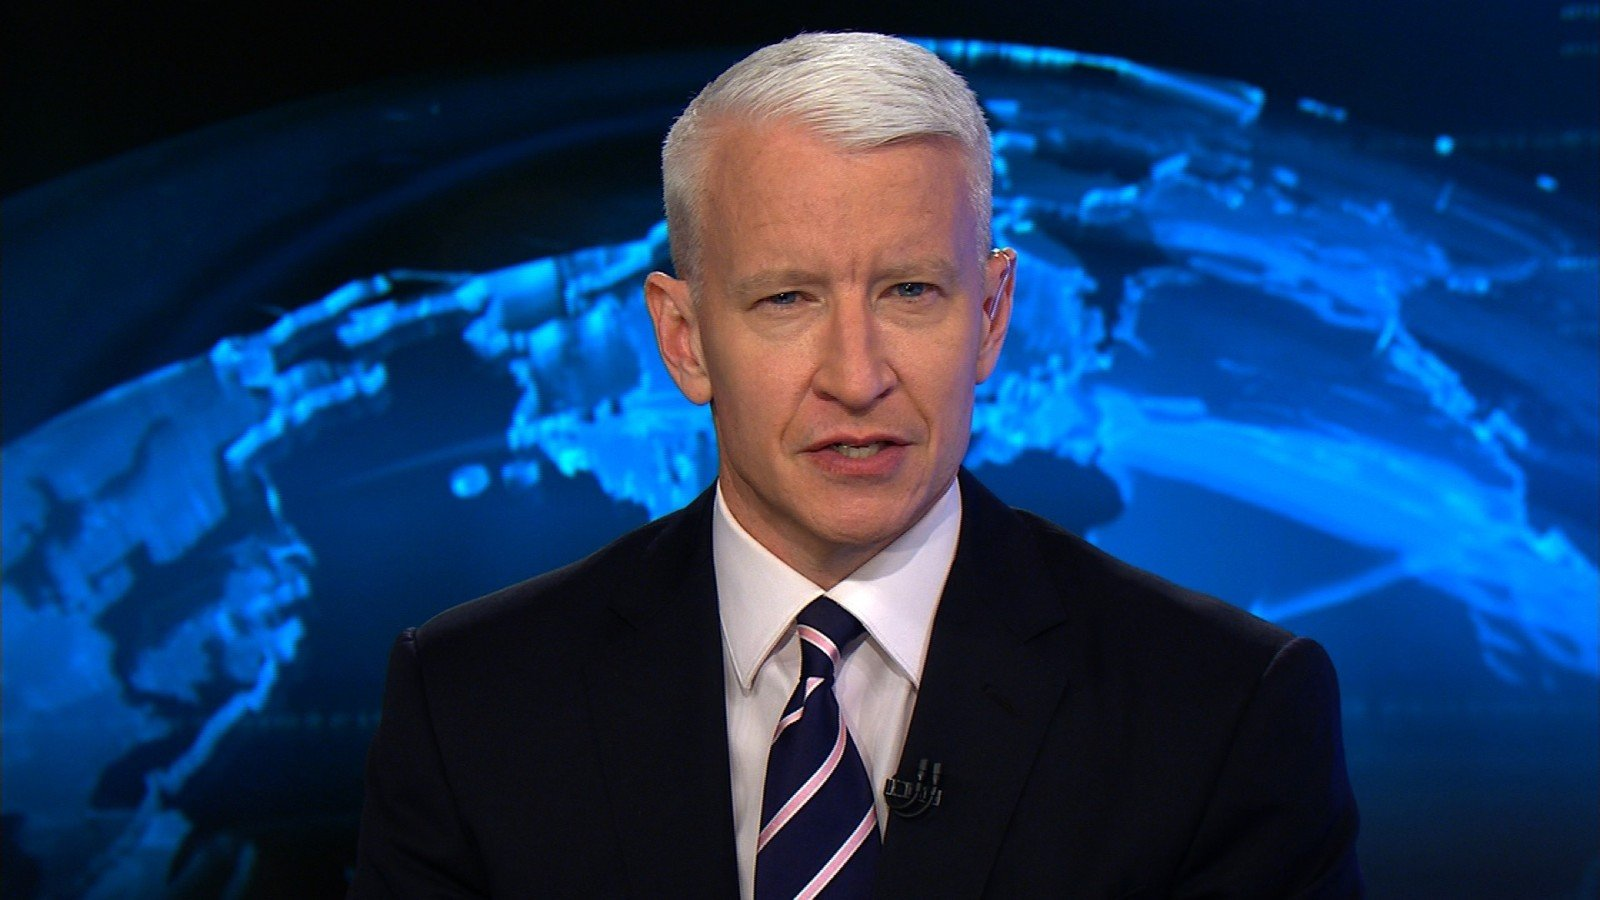 The 20 Richest News Anchors In The World